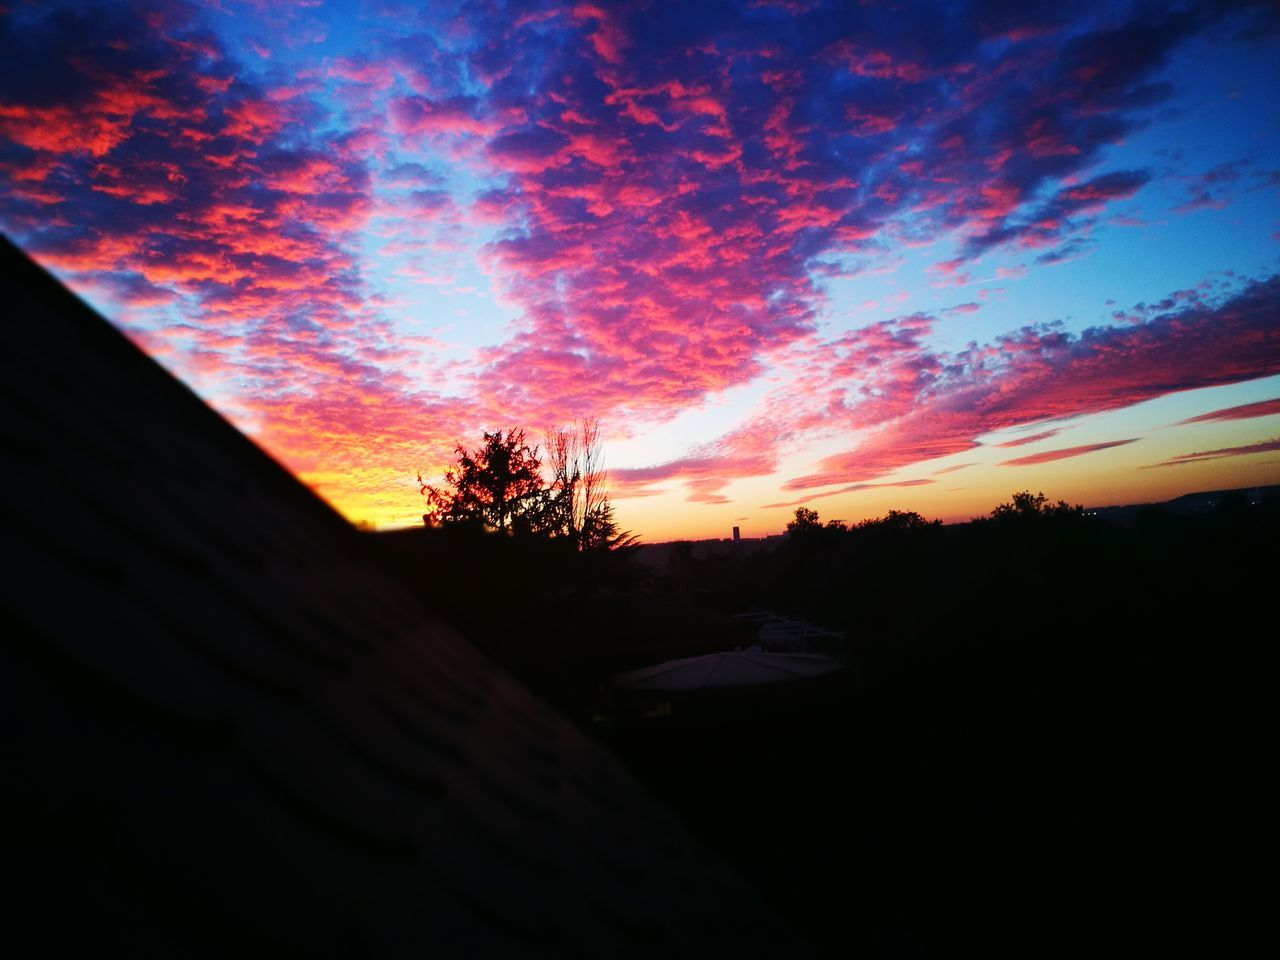 sunset, sky, silhouette, no people, tree, nature, beauty in nature, cloud - sky, scenics, outdoors, architecture, day